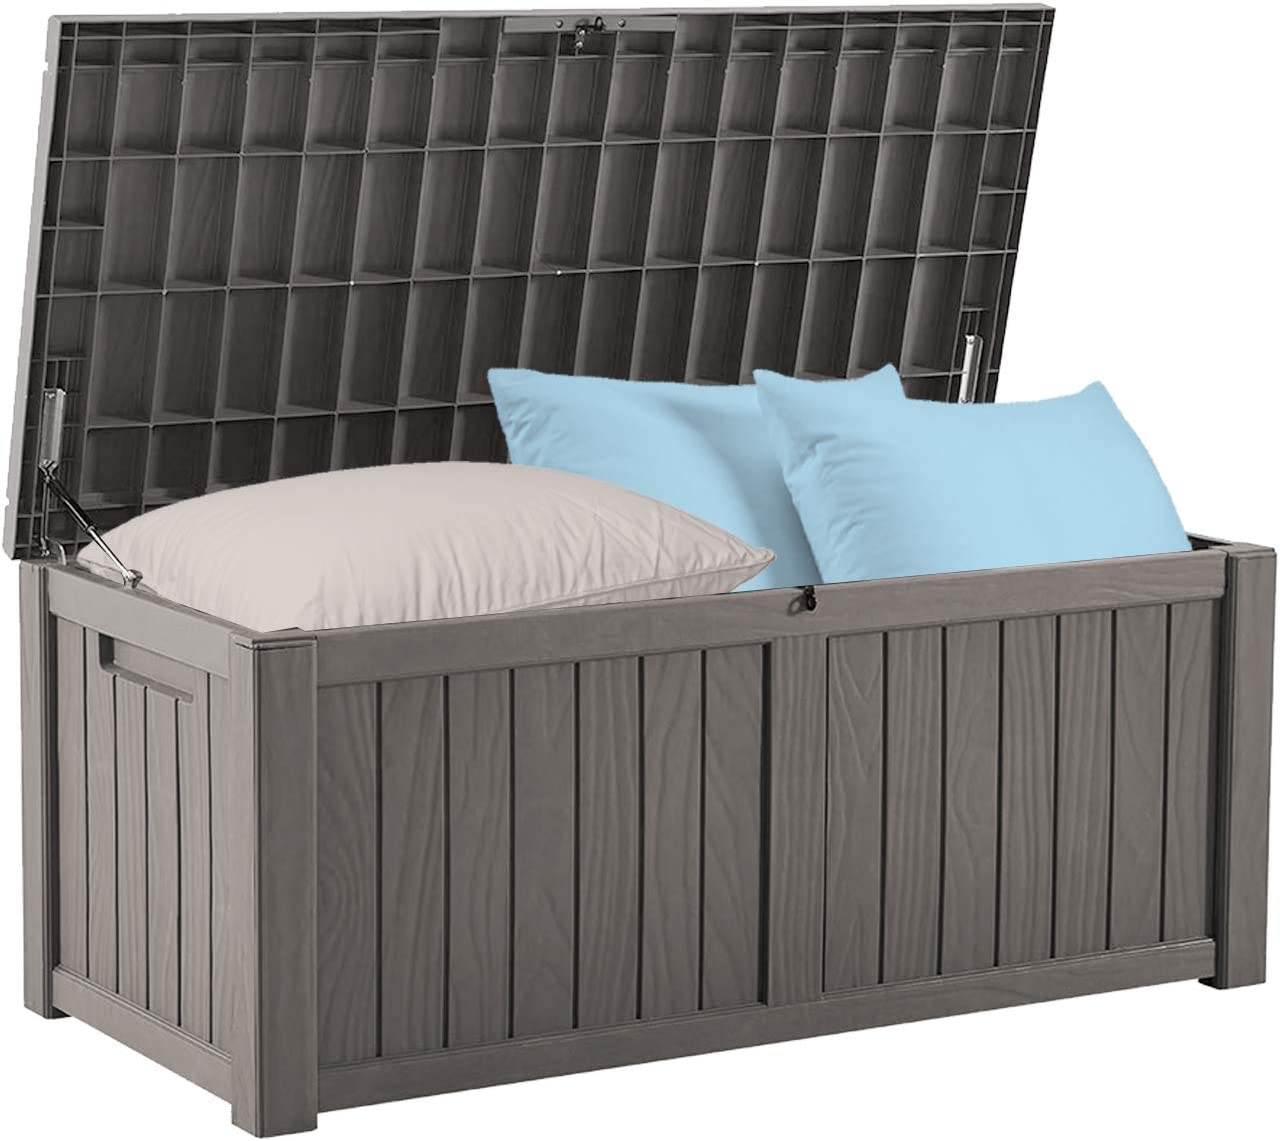 BLUU 120 Gallon Outdoor Deck Box Storage for Outdoor Pillows, Pool Toys, Garden Tools, Furniture and Sports Equipment | Water-resistant | Grey | Lock Included